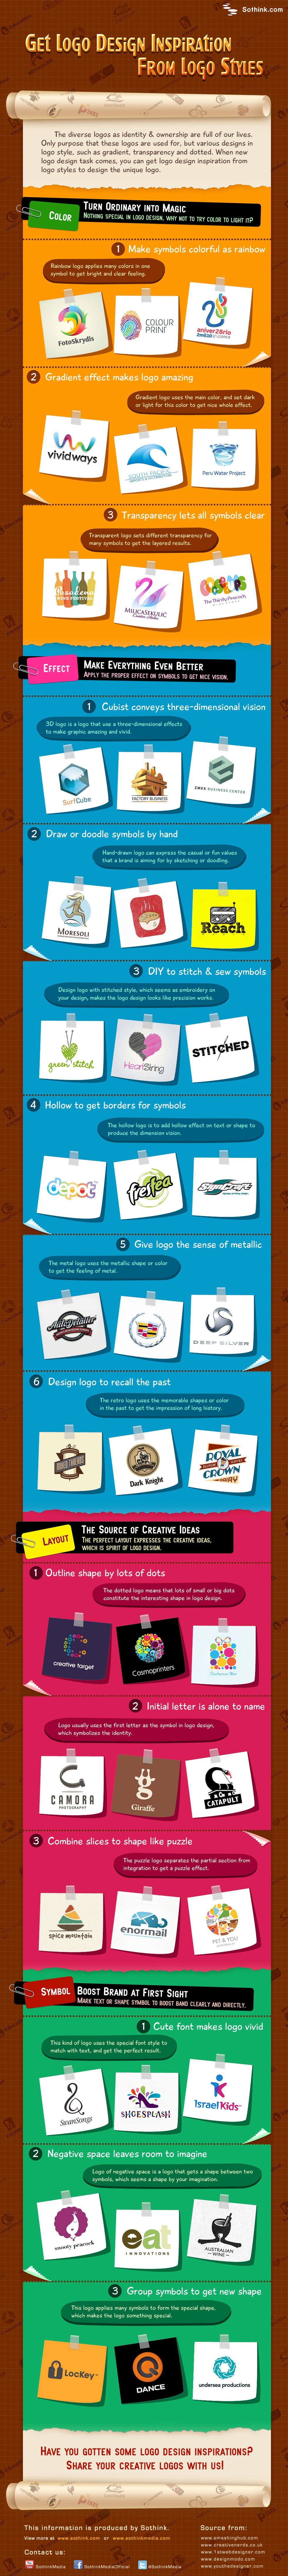 logo-design-inspiration-styles-infographic